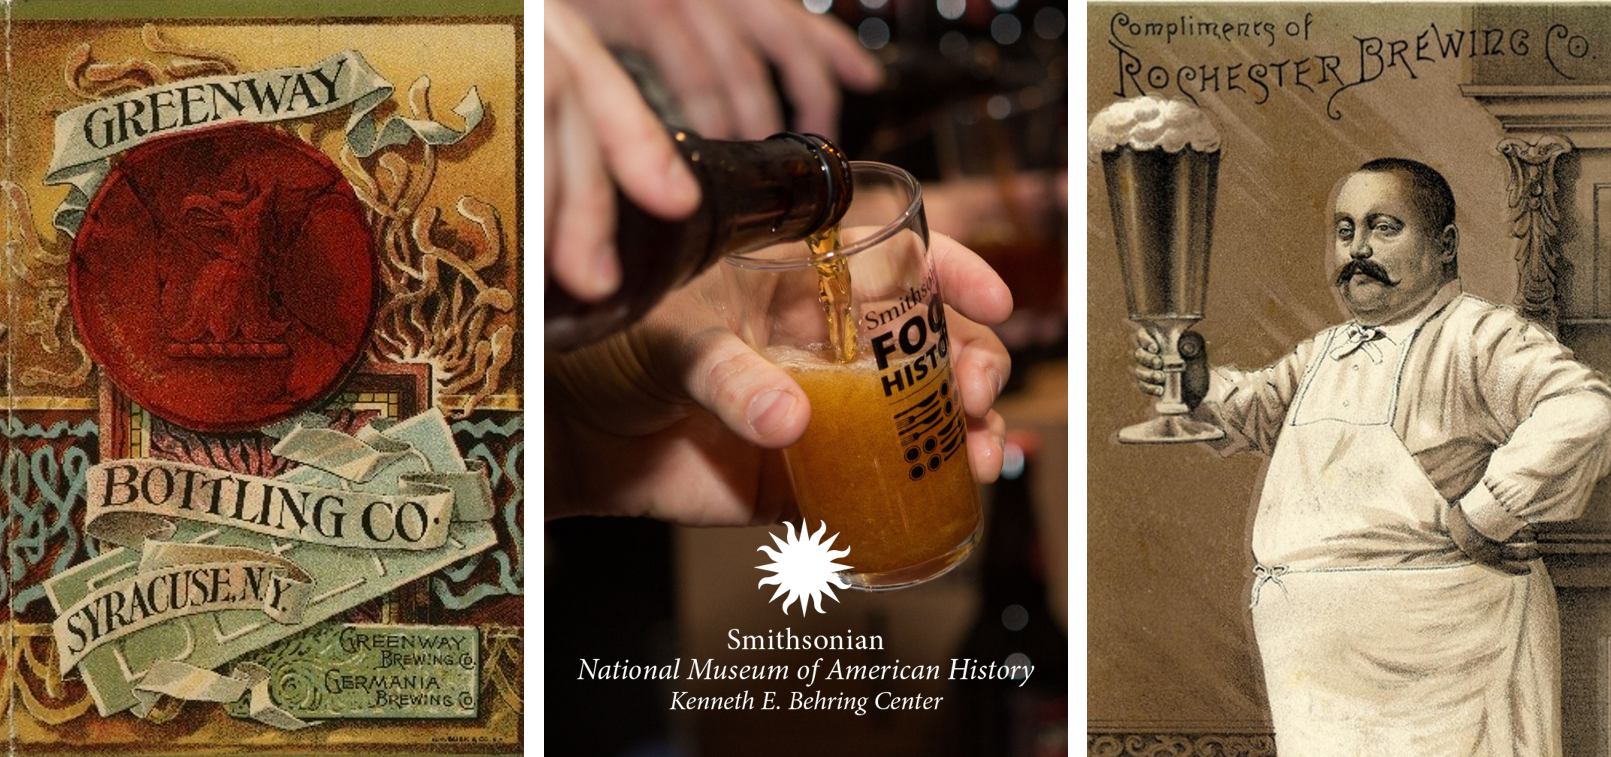 Brewing history objects and museum logo